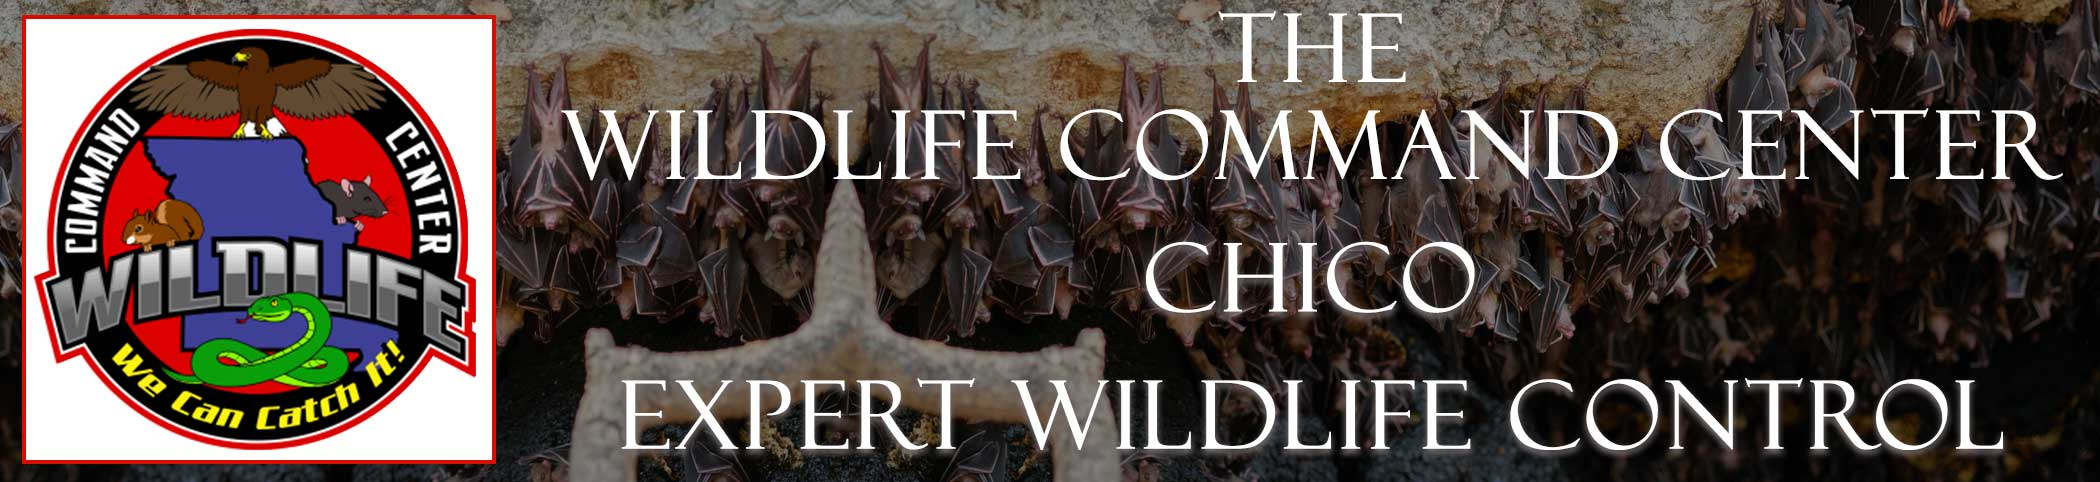 chico-wildlife-command-center